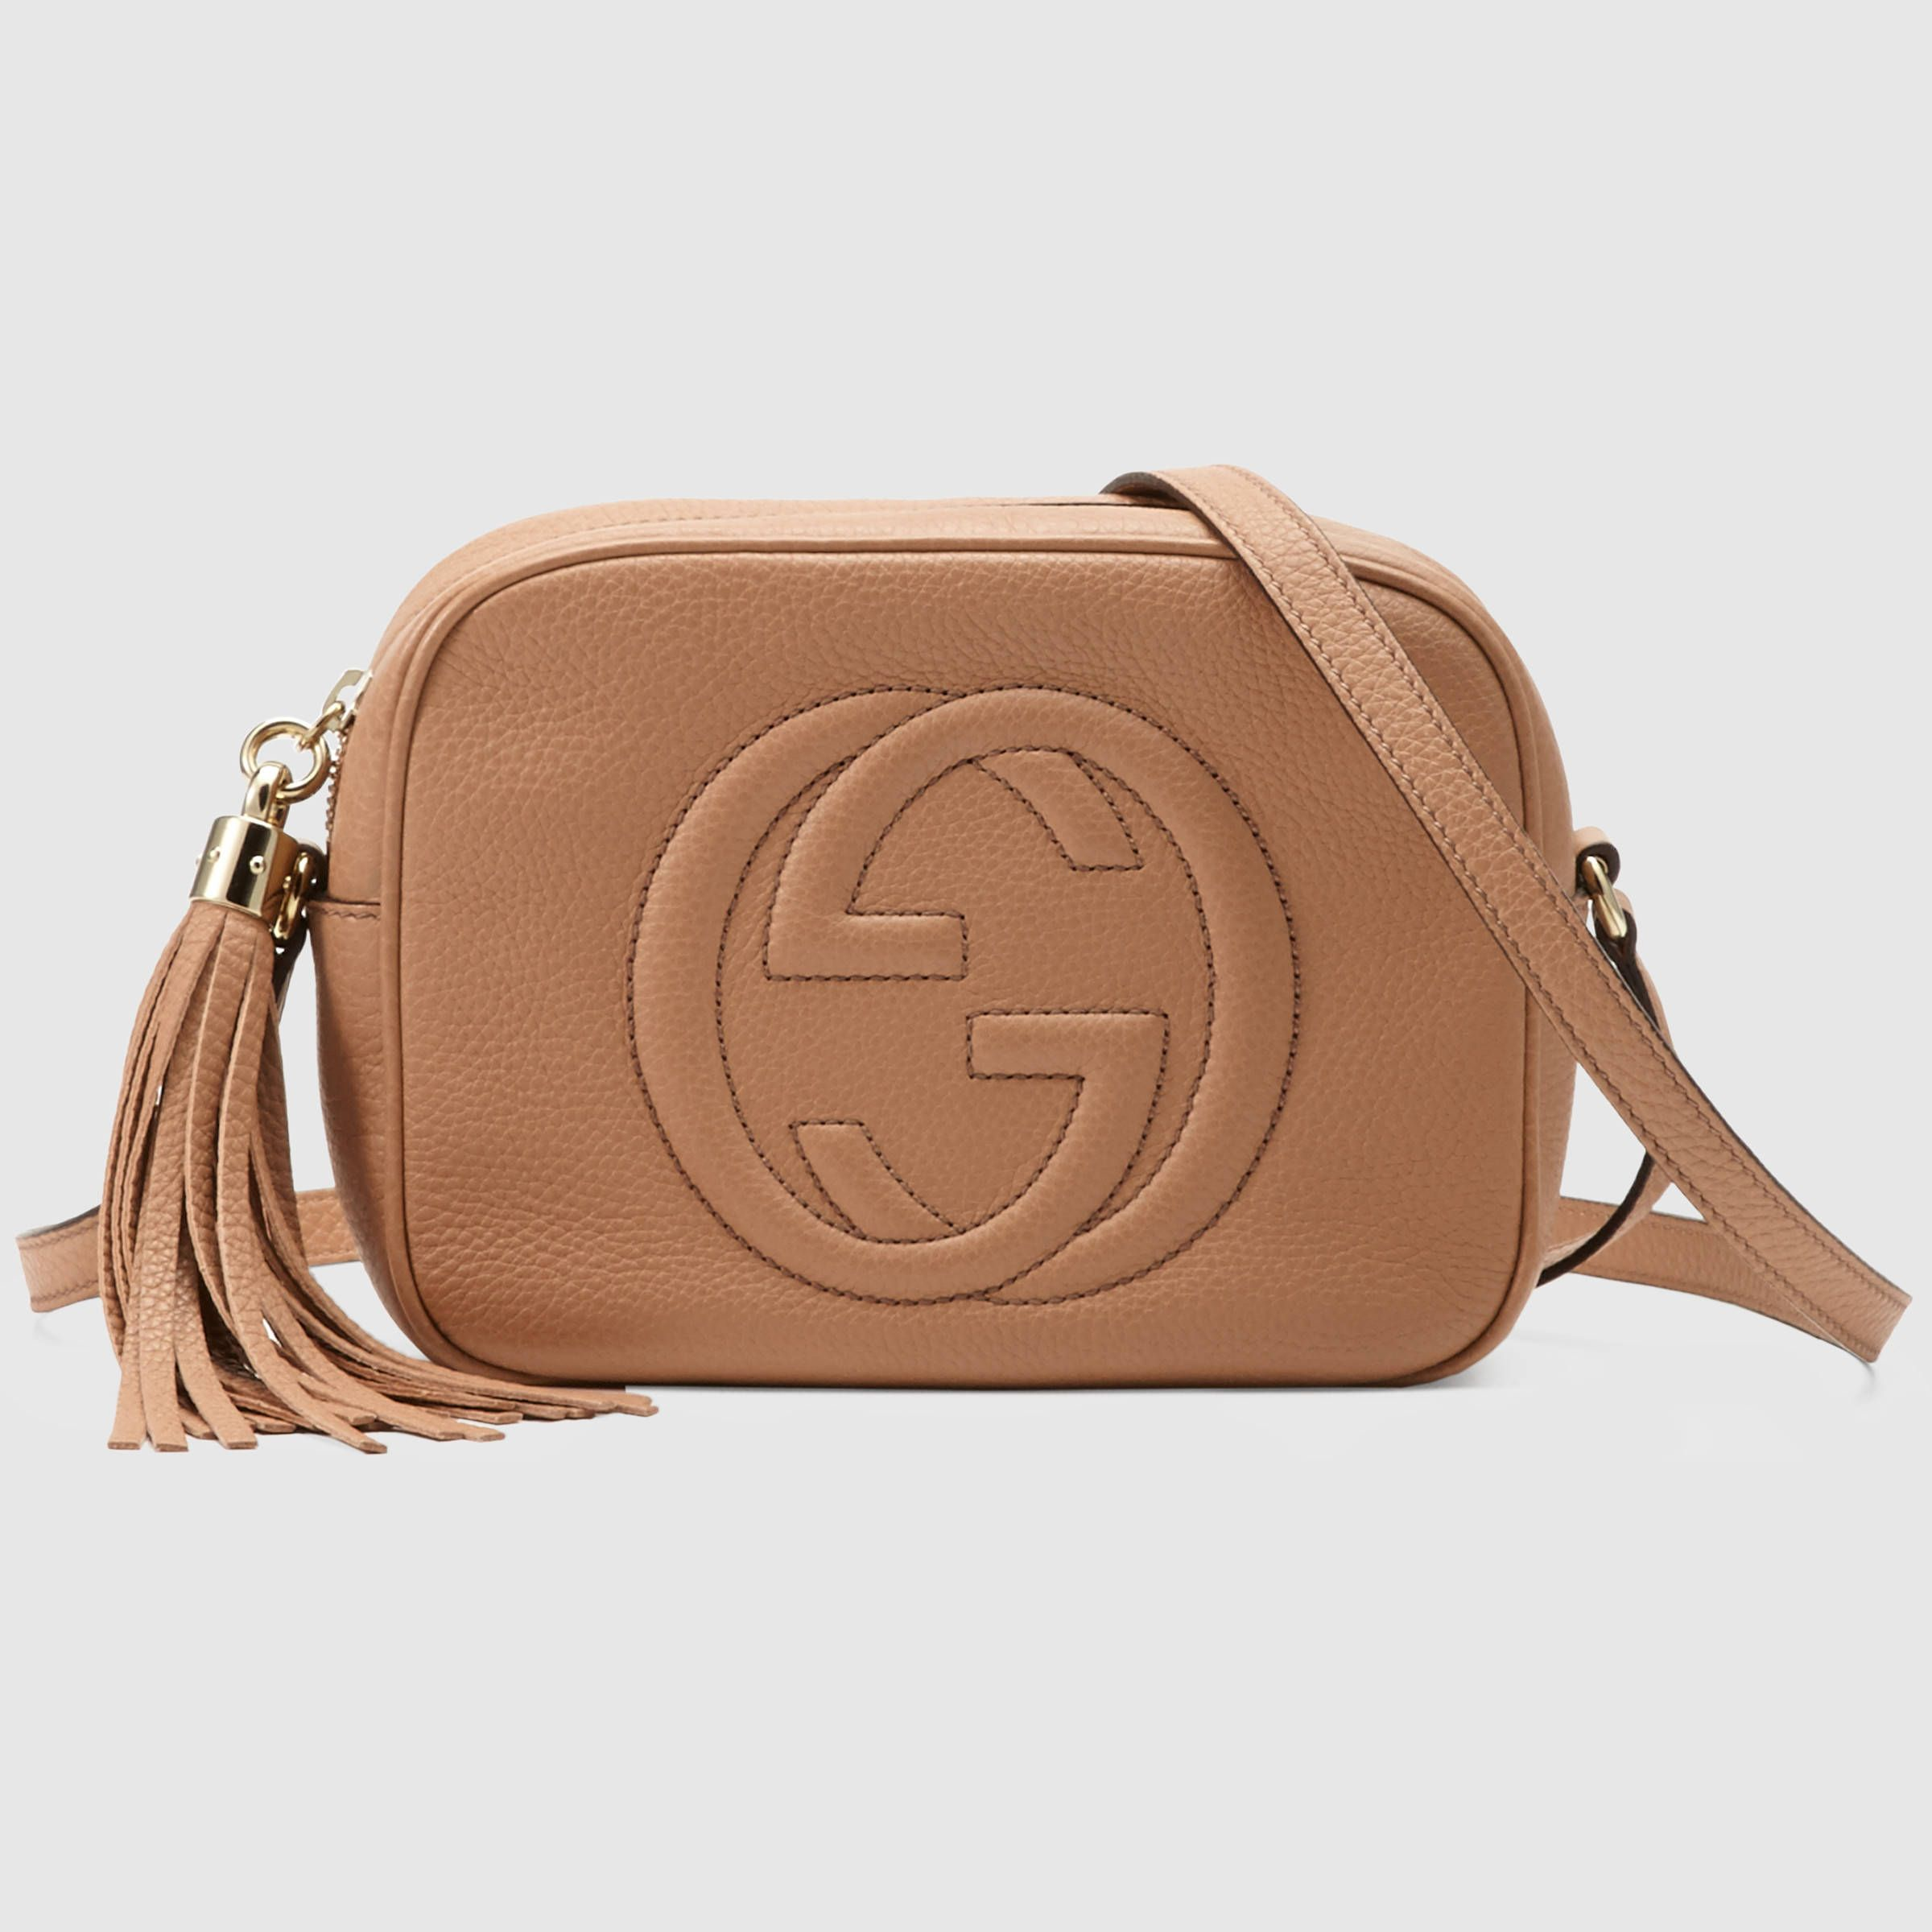 Gucci Women - Soho leather disco bag - rosè beige leather  980  308364A7M0G2754 8bd30899ae